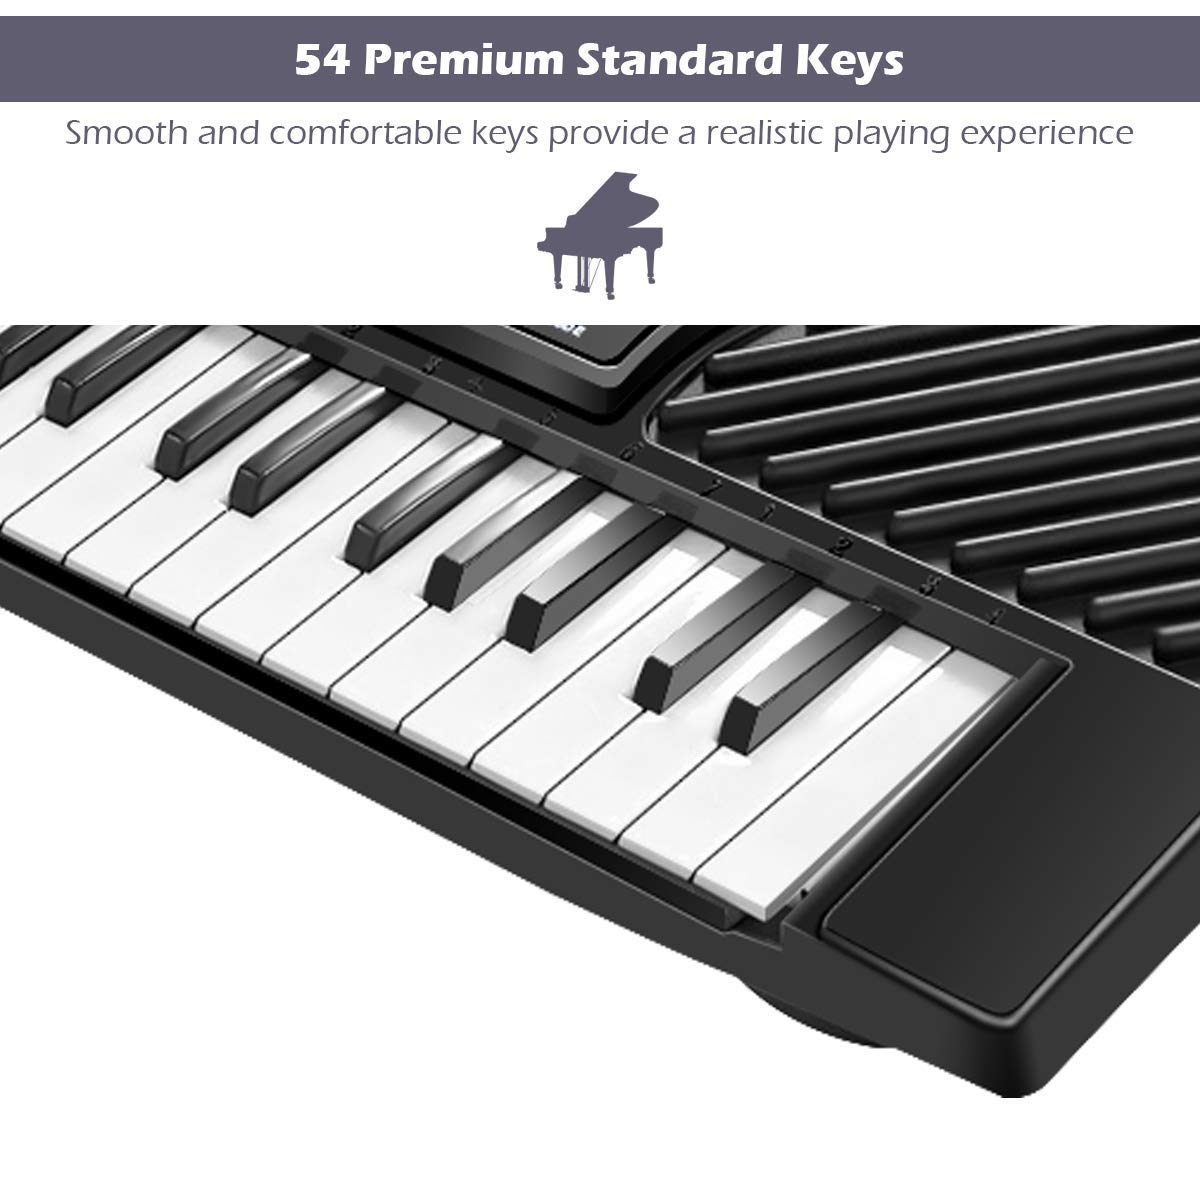 Tangkula 54-Key Electronic Keyboard for Kids Beginners with Mic & Adapter Including LED Digital Display, Learning Function & Demo Songs Standard Accordion Keys Piano Keyboard (Black) by TANGKULA (Image #6)